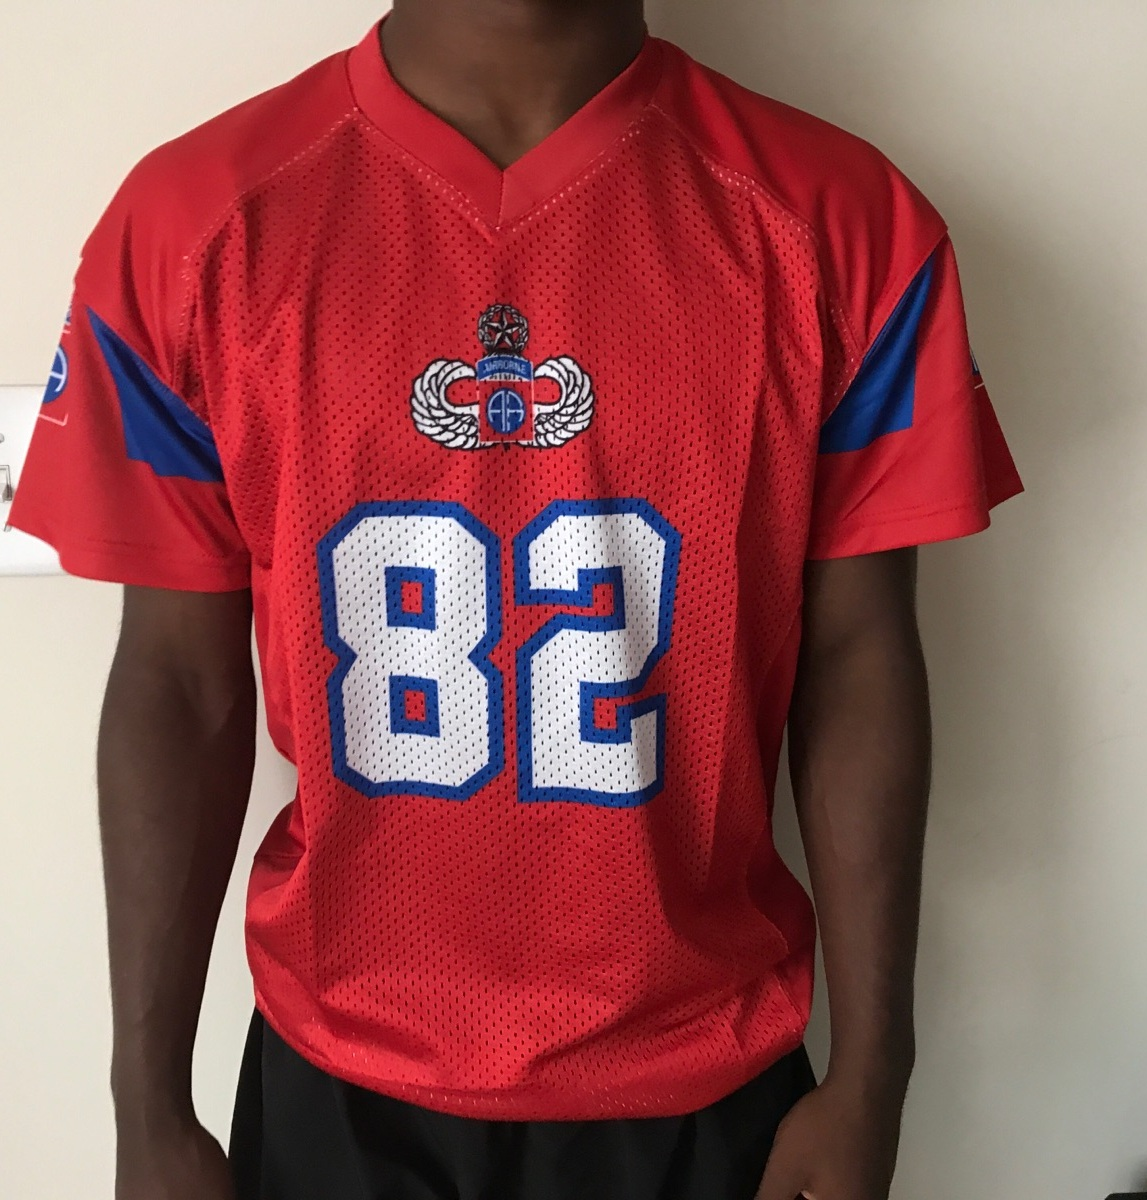 82D ABN Football Sublimation Jerseys - 82nd Airborne Division Museum a72176d5a